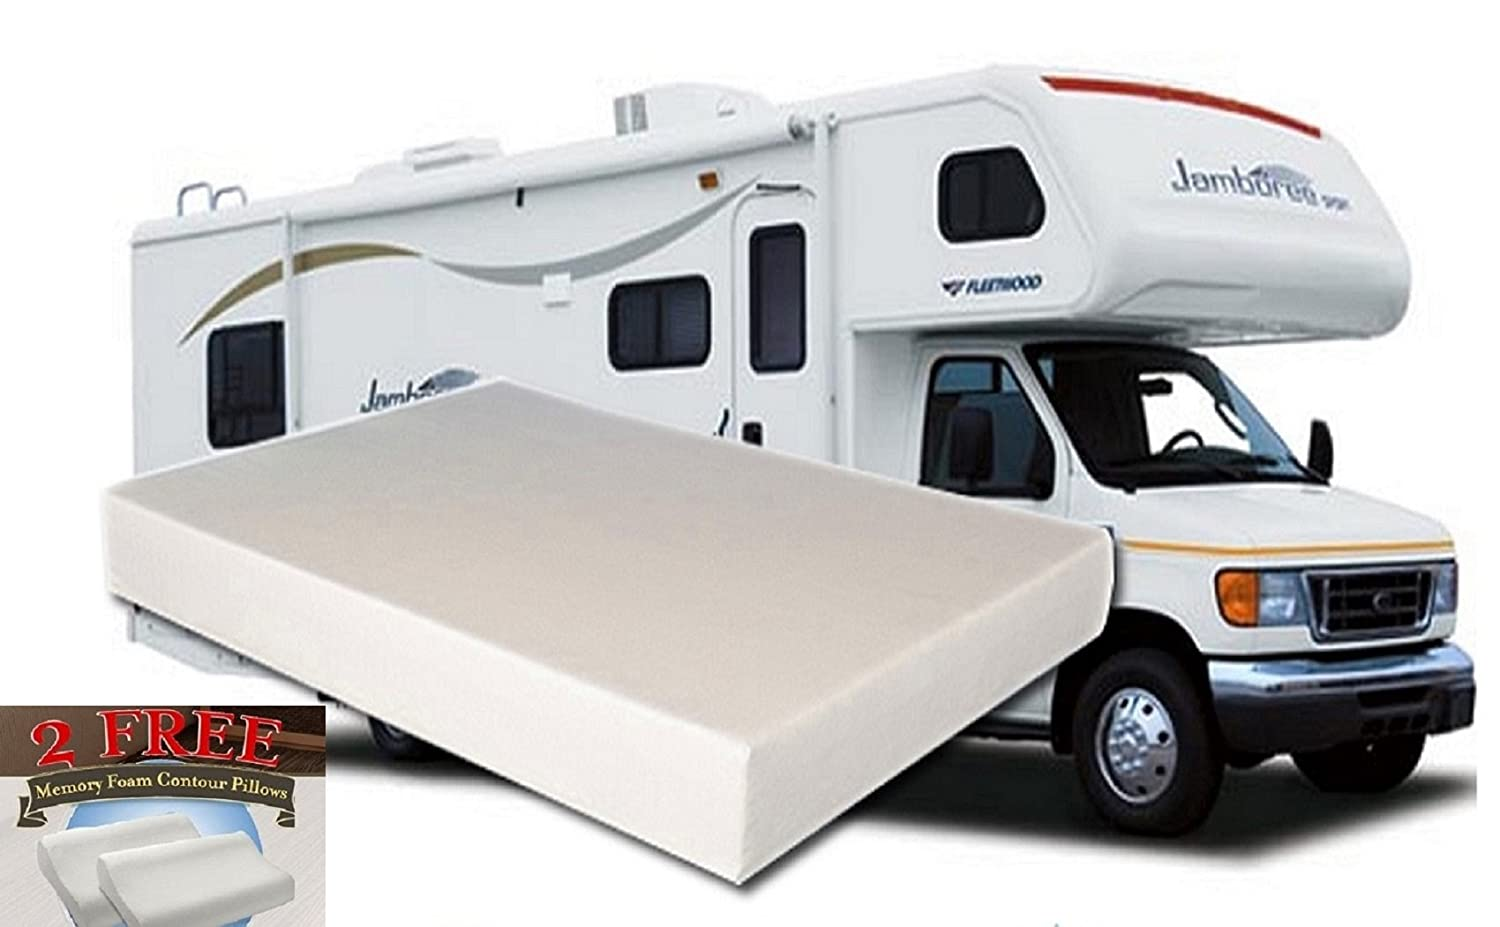 10-Inch King MEDIUM-FIRM Memory Foam Short Mattress for RV - Camper - Made in the USA - 2 FREE Pillows